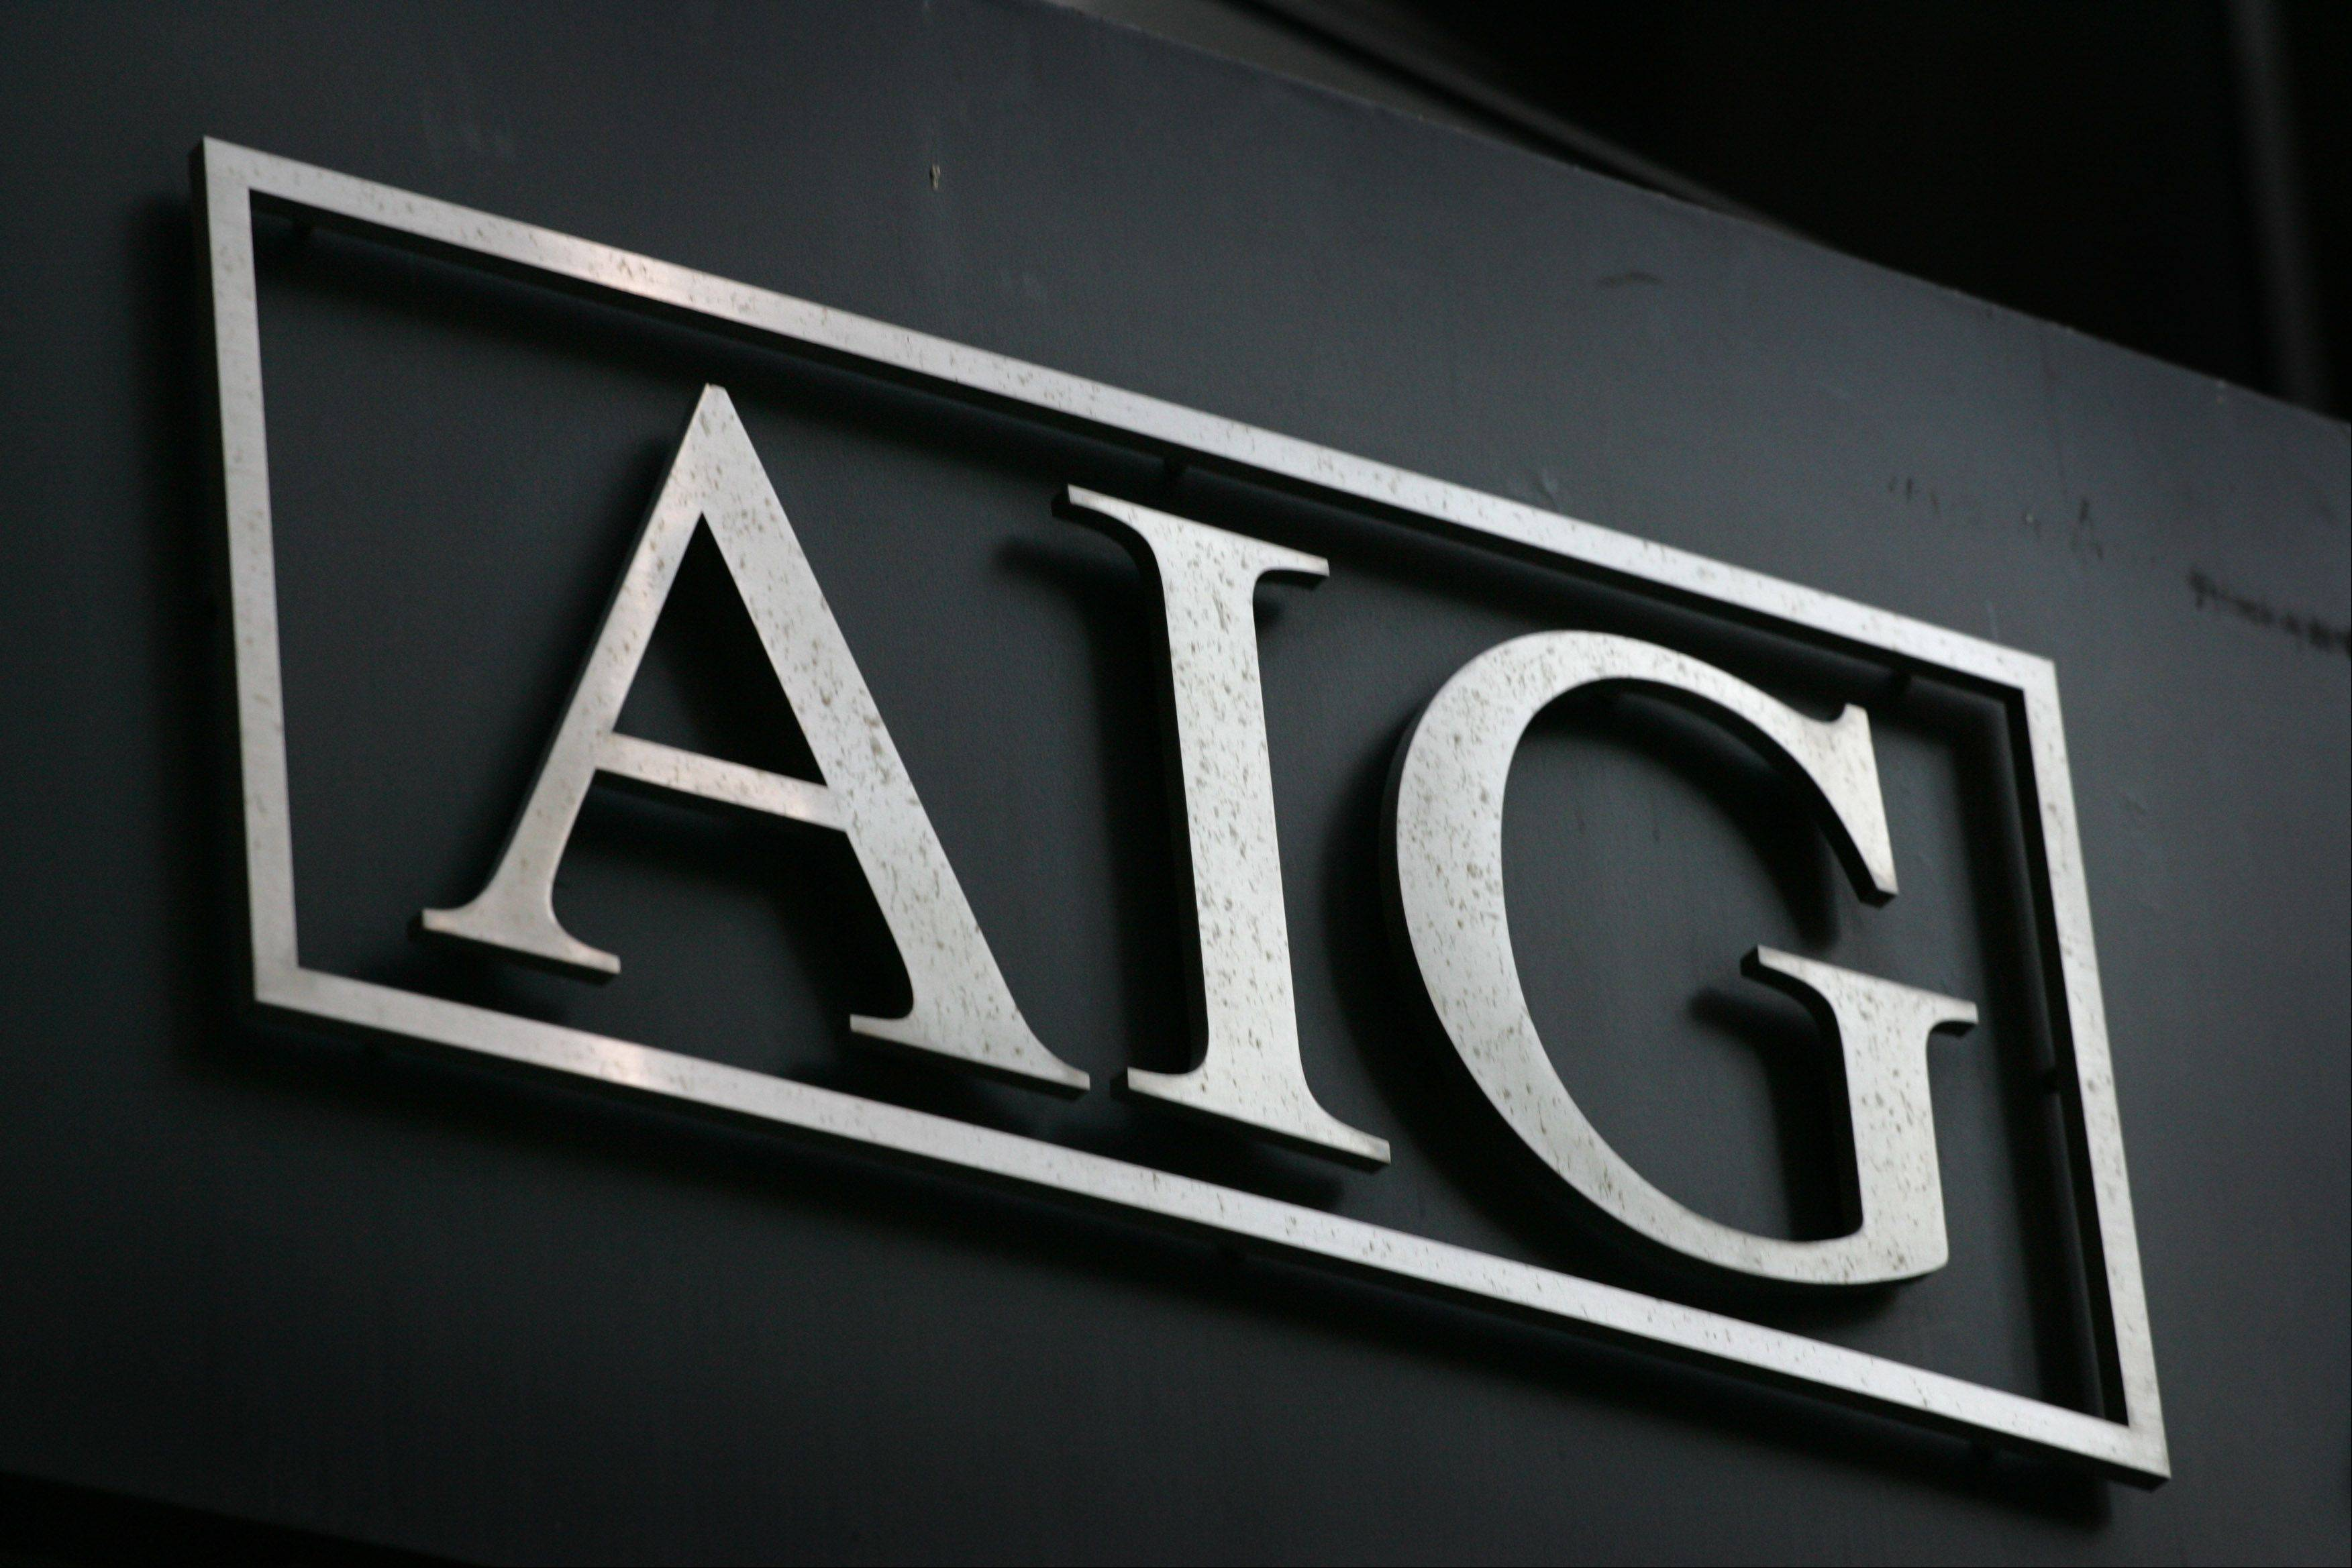 FILE - In this Sept. 17, 2008 file photo, the AIG logo is shown in New York. Bailed-out insurance conglomerate American International Group Inc. is taking a key step toward paying off a bailout that was at one point worth $182 billion _ the largest of the financial crisis. The company says in a public filing Wednesday, Dec. 8, 2010, that it will repay a loan from the Federal Reserve Bank of New York.